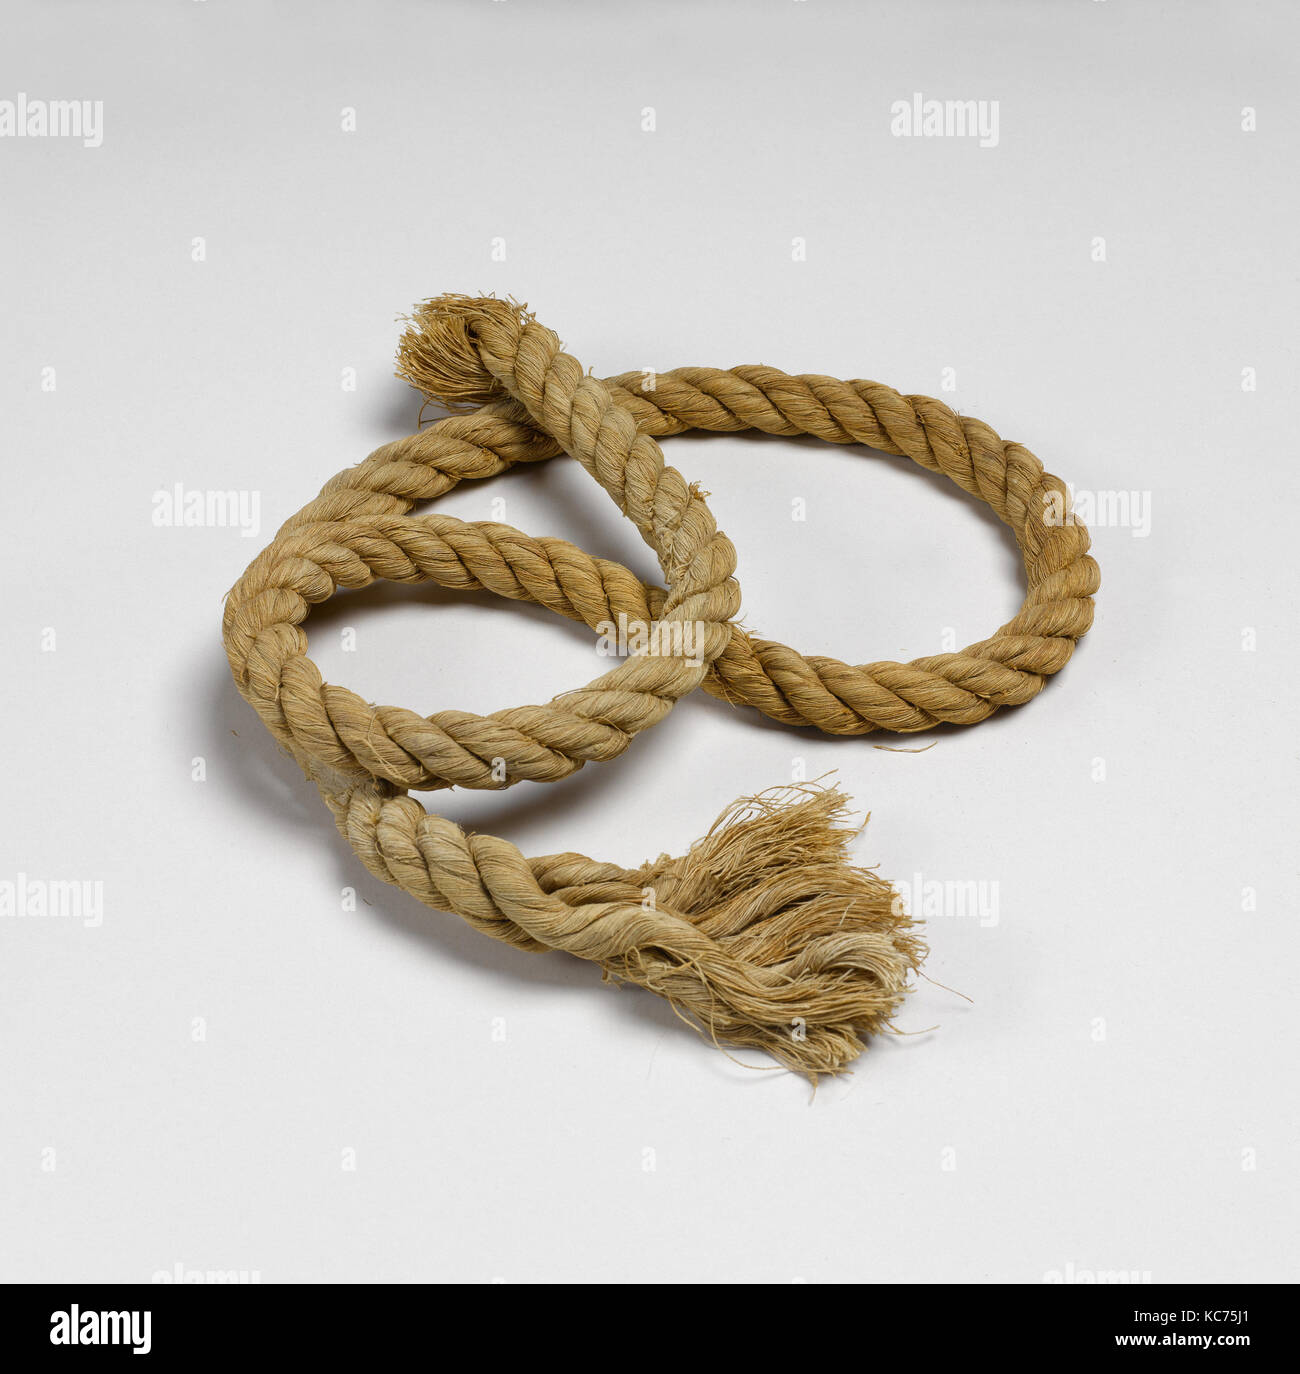 Rope, Middle Kingdom, Dynasty 11, ca. 2030–1640 B.C., From Egypt, Upper Egypt, Thebes, Deir el-Bahri, Tomb of Aashyt - Stock Image